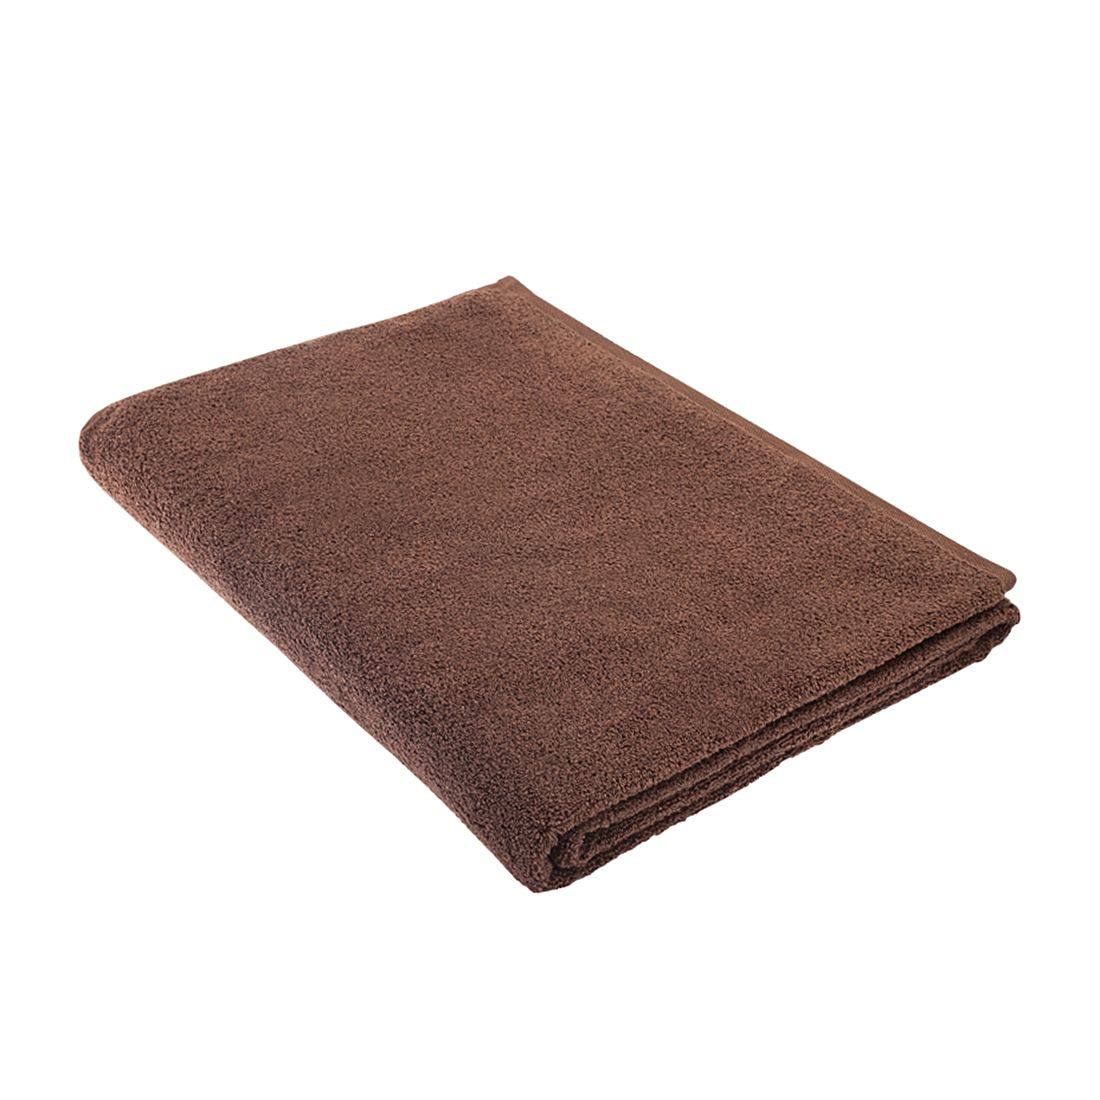 Home 24 - Serviette de sauna pure - 100 % coton - marron, stilana